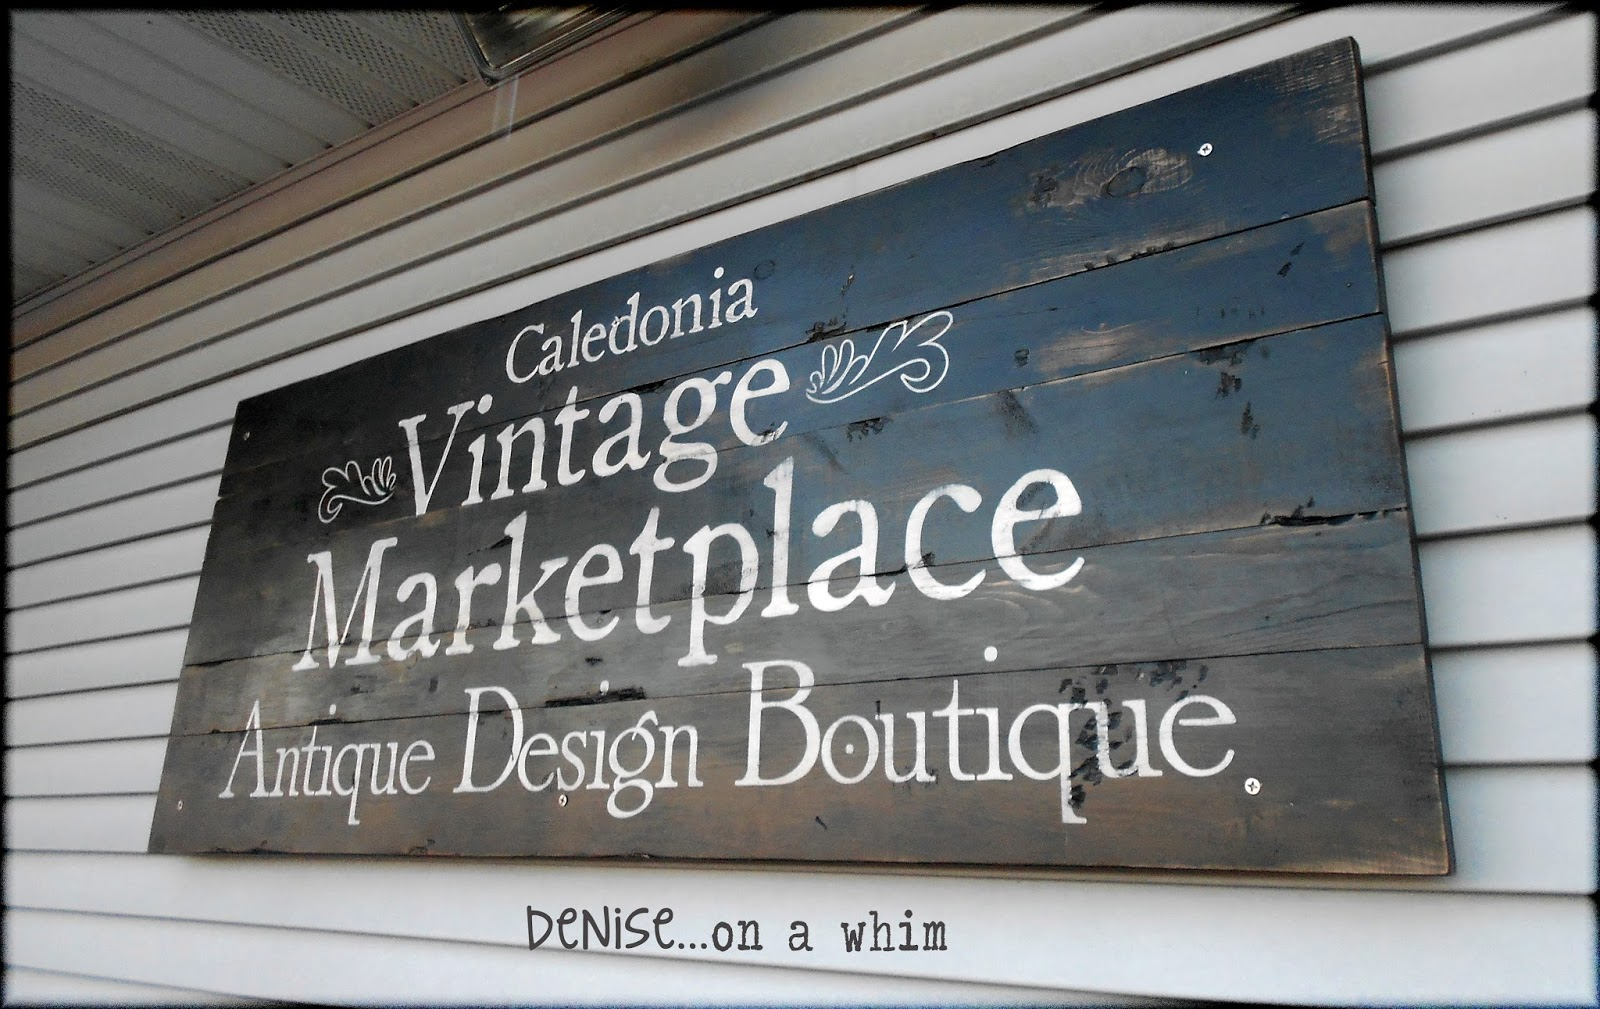 Store Entrance Sign via http://deniseonawhim.blogspot.com